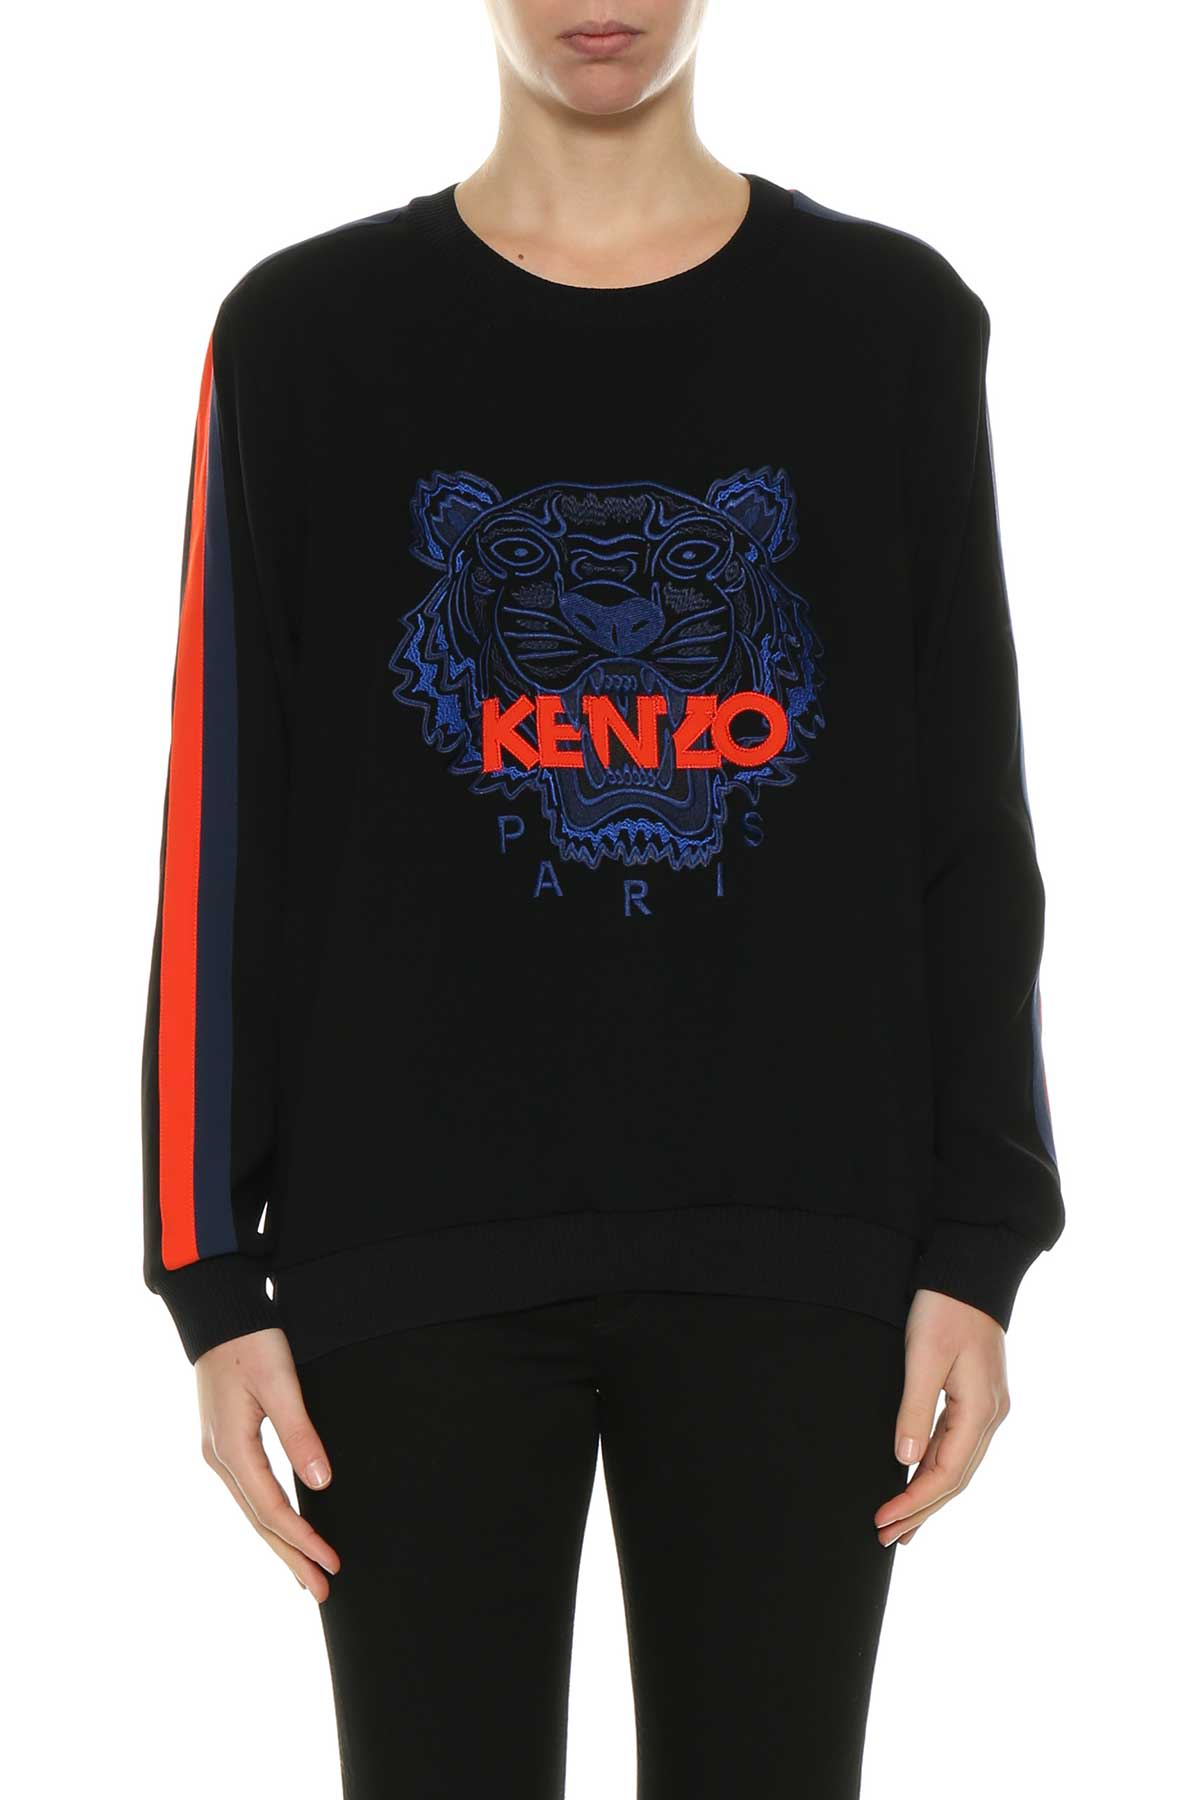 Kenzo Kenzo Polyester Sweatshirt With Tiger